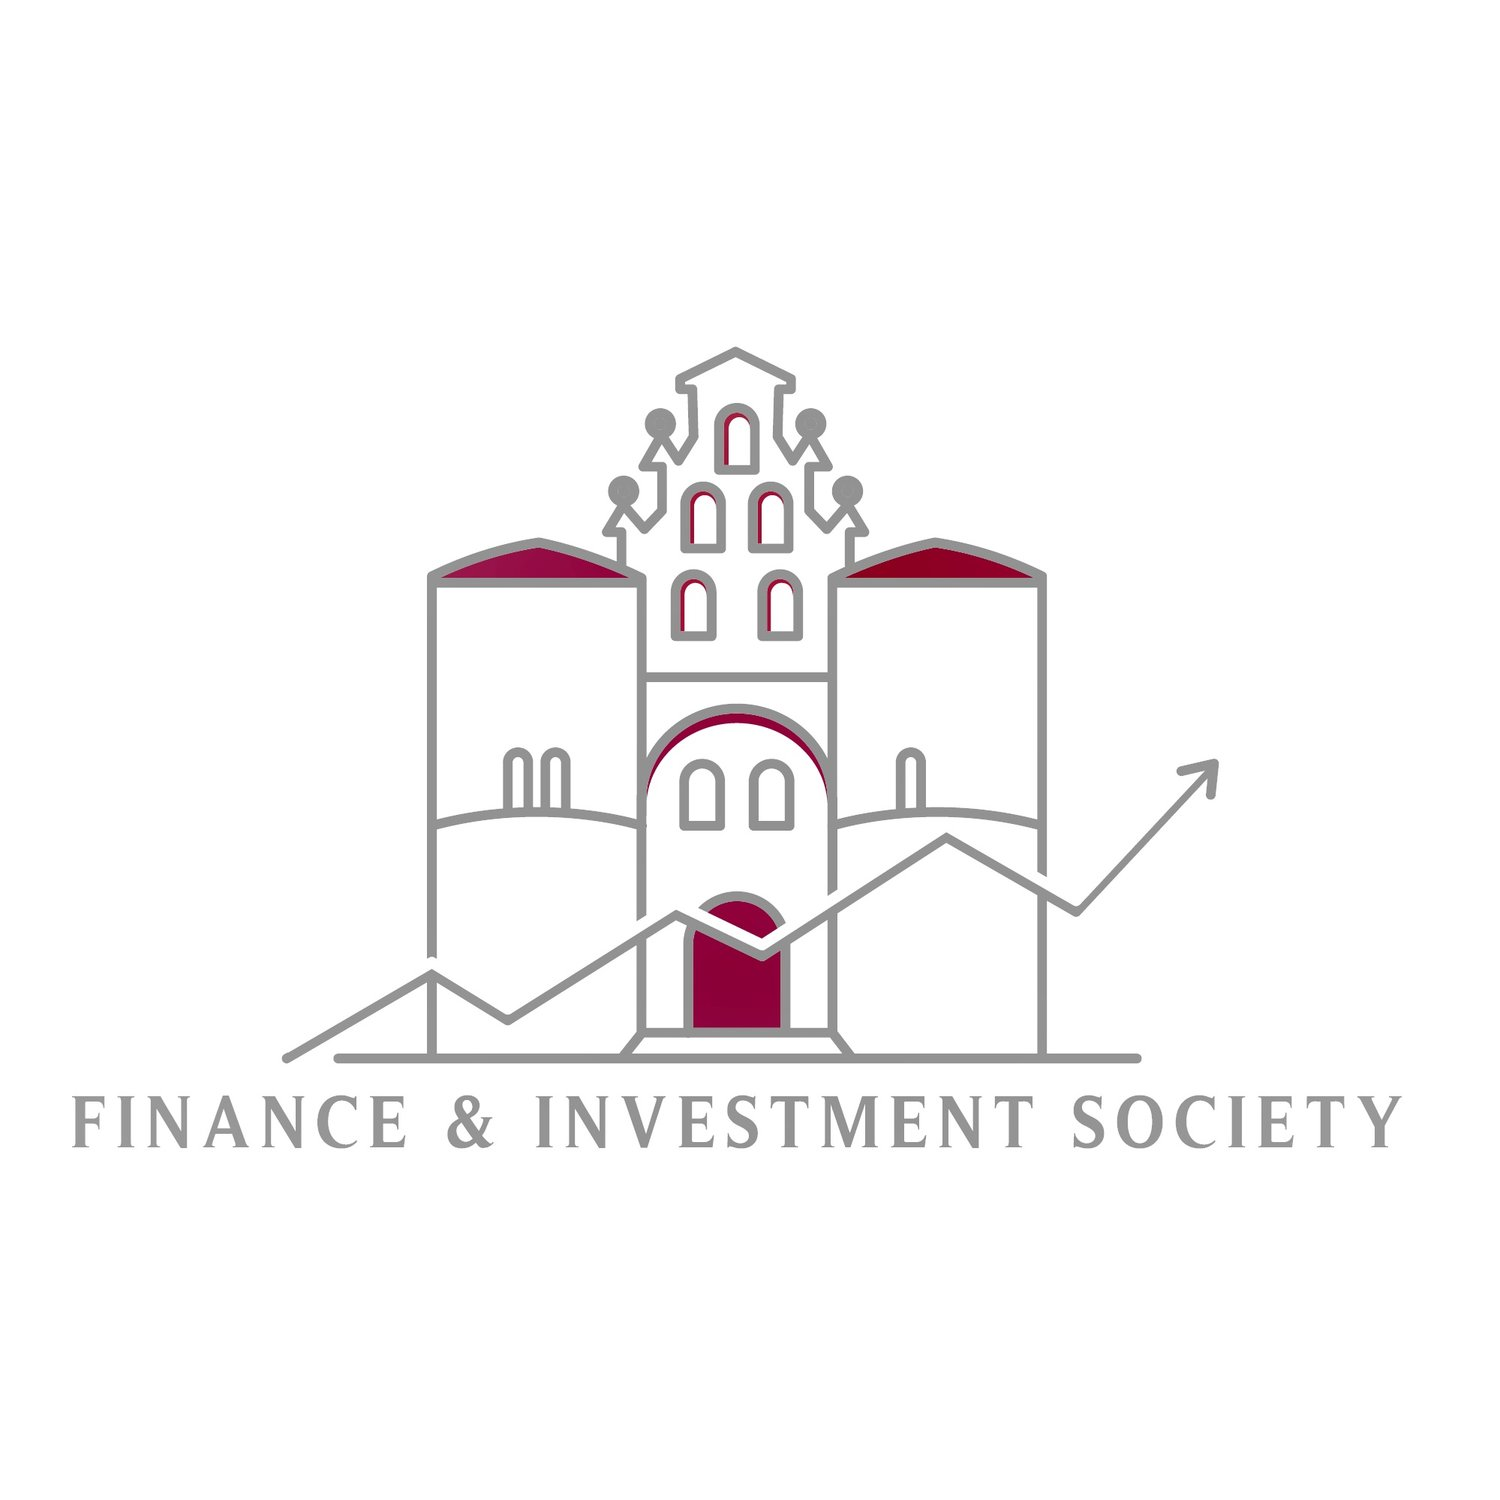 SDSU Finance & Investment Society